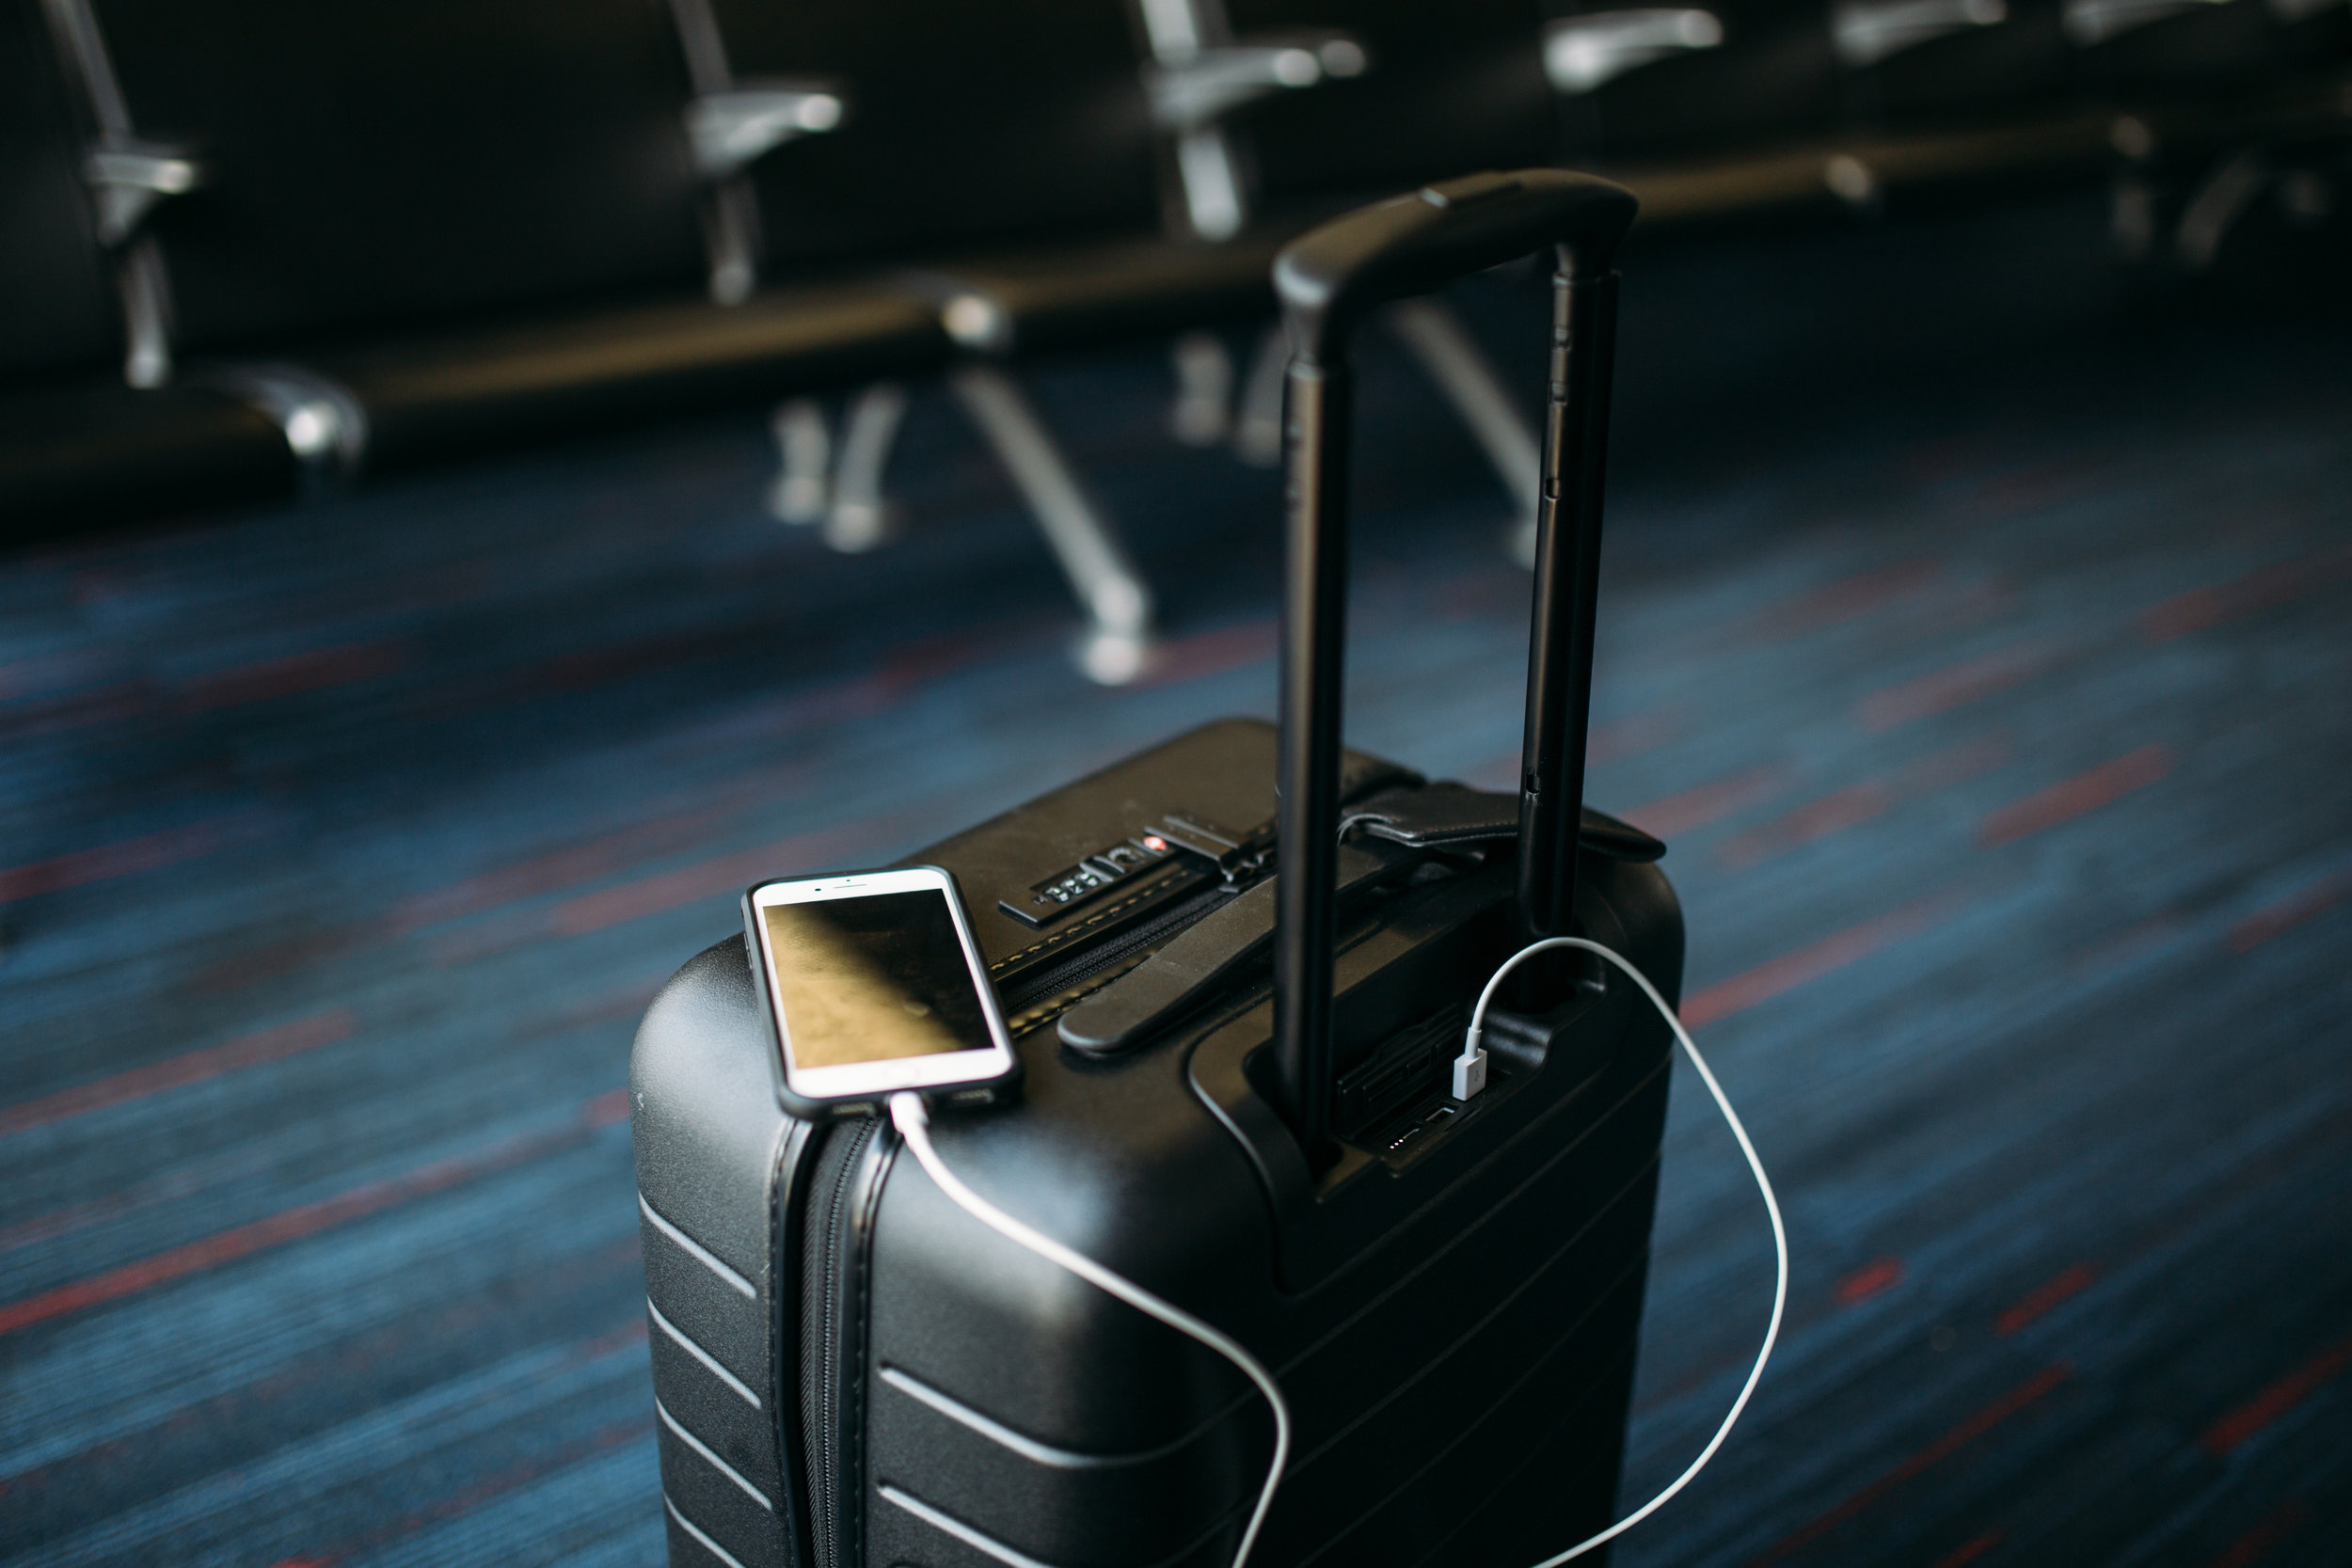 Suitcase and iPhone.jpg